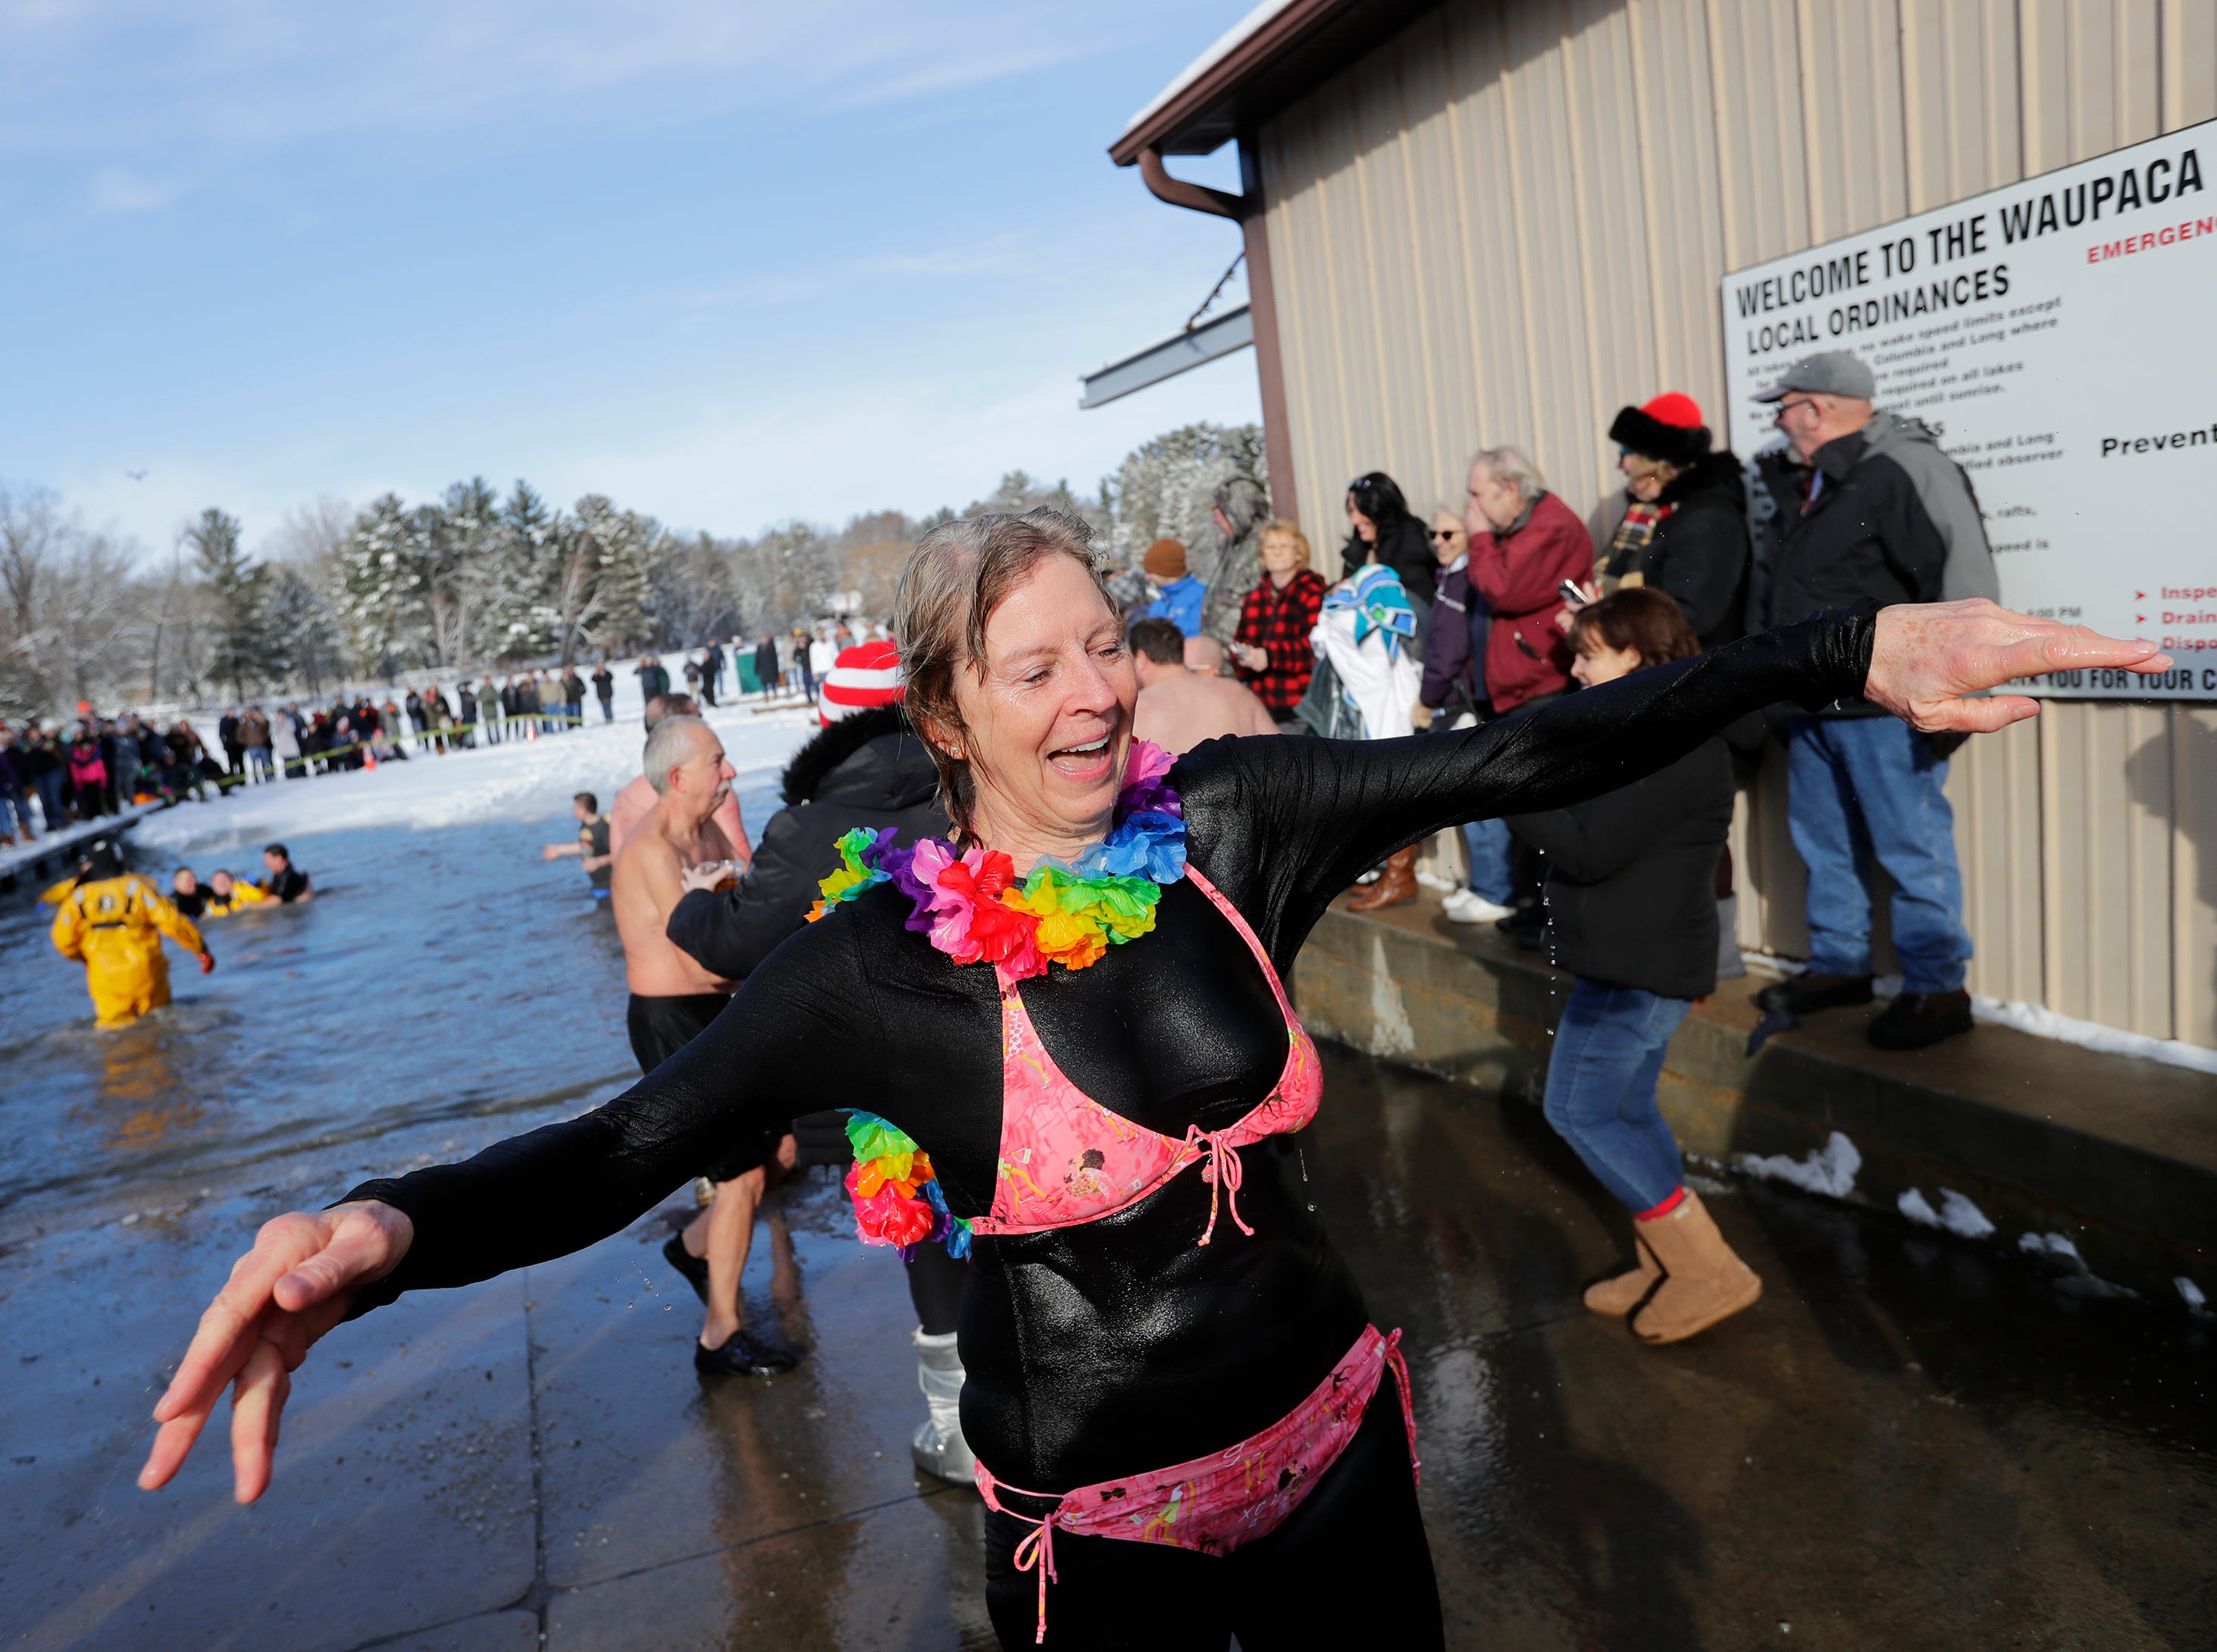 Sara Bredesen of Waupaca emerges from the bitter water during the Polar Bear Plunge Tuesday, January 1, 2019, at Becker Marine on Lime Kiln Lake in Waupaca, Wis. Dan Powers/USA TODAY NETWORK-Wisconsin